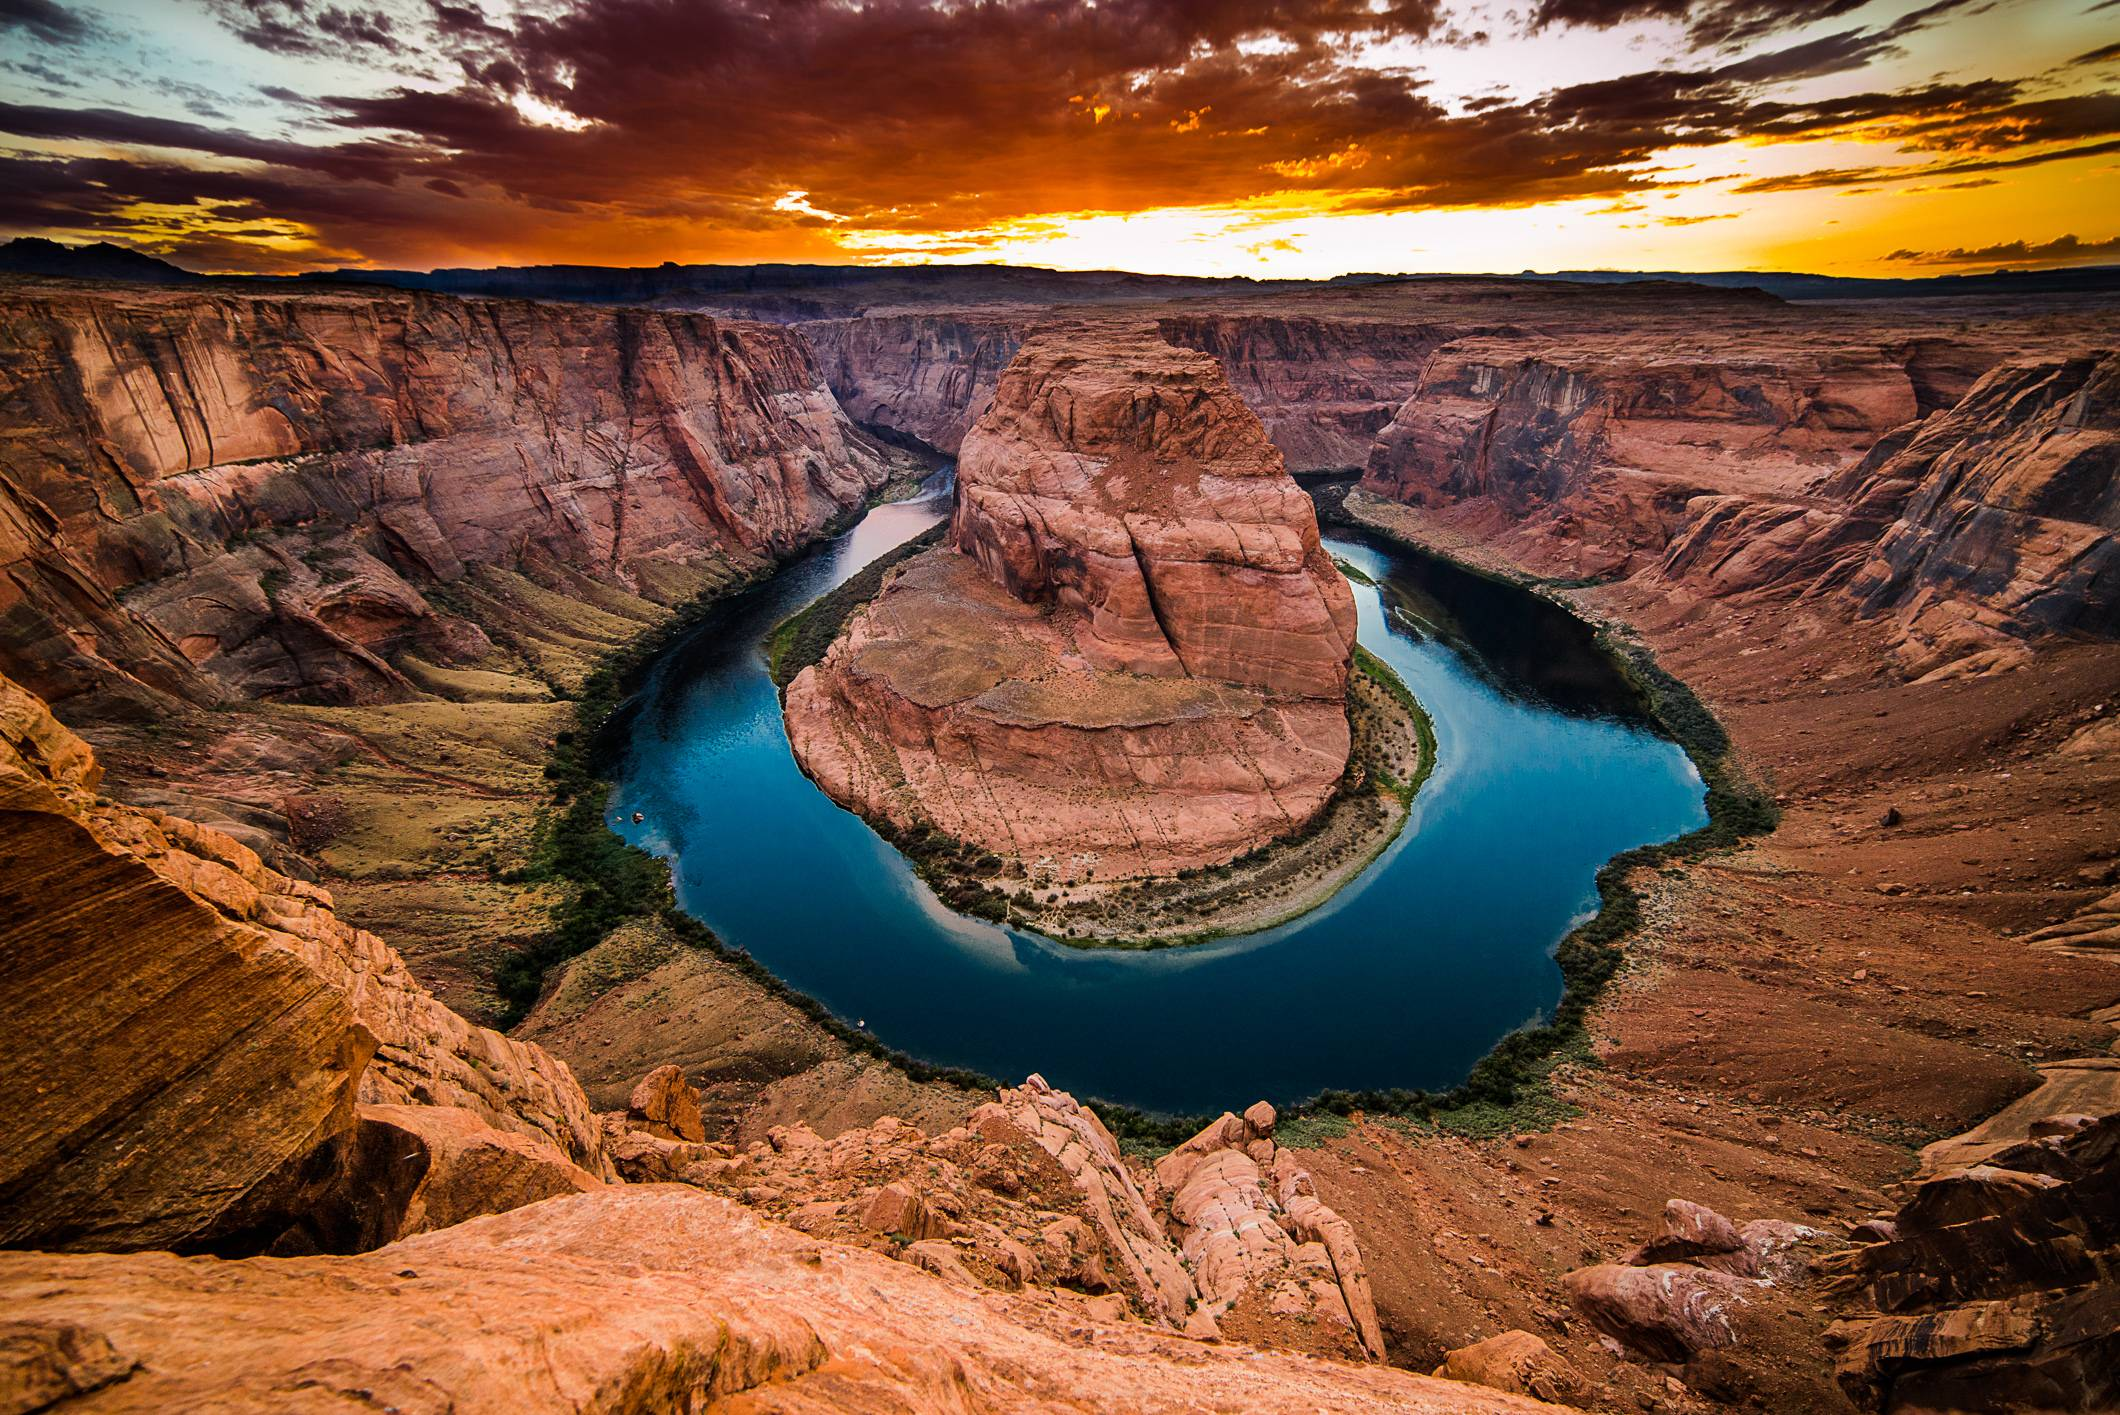 Horseshoe bend hd - photo#3